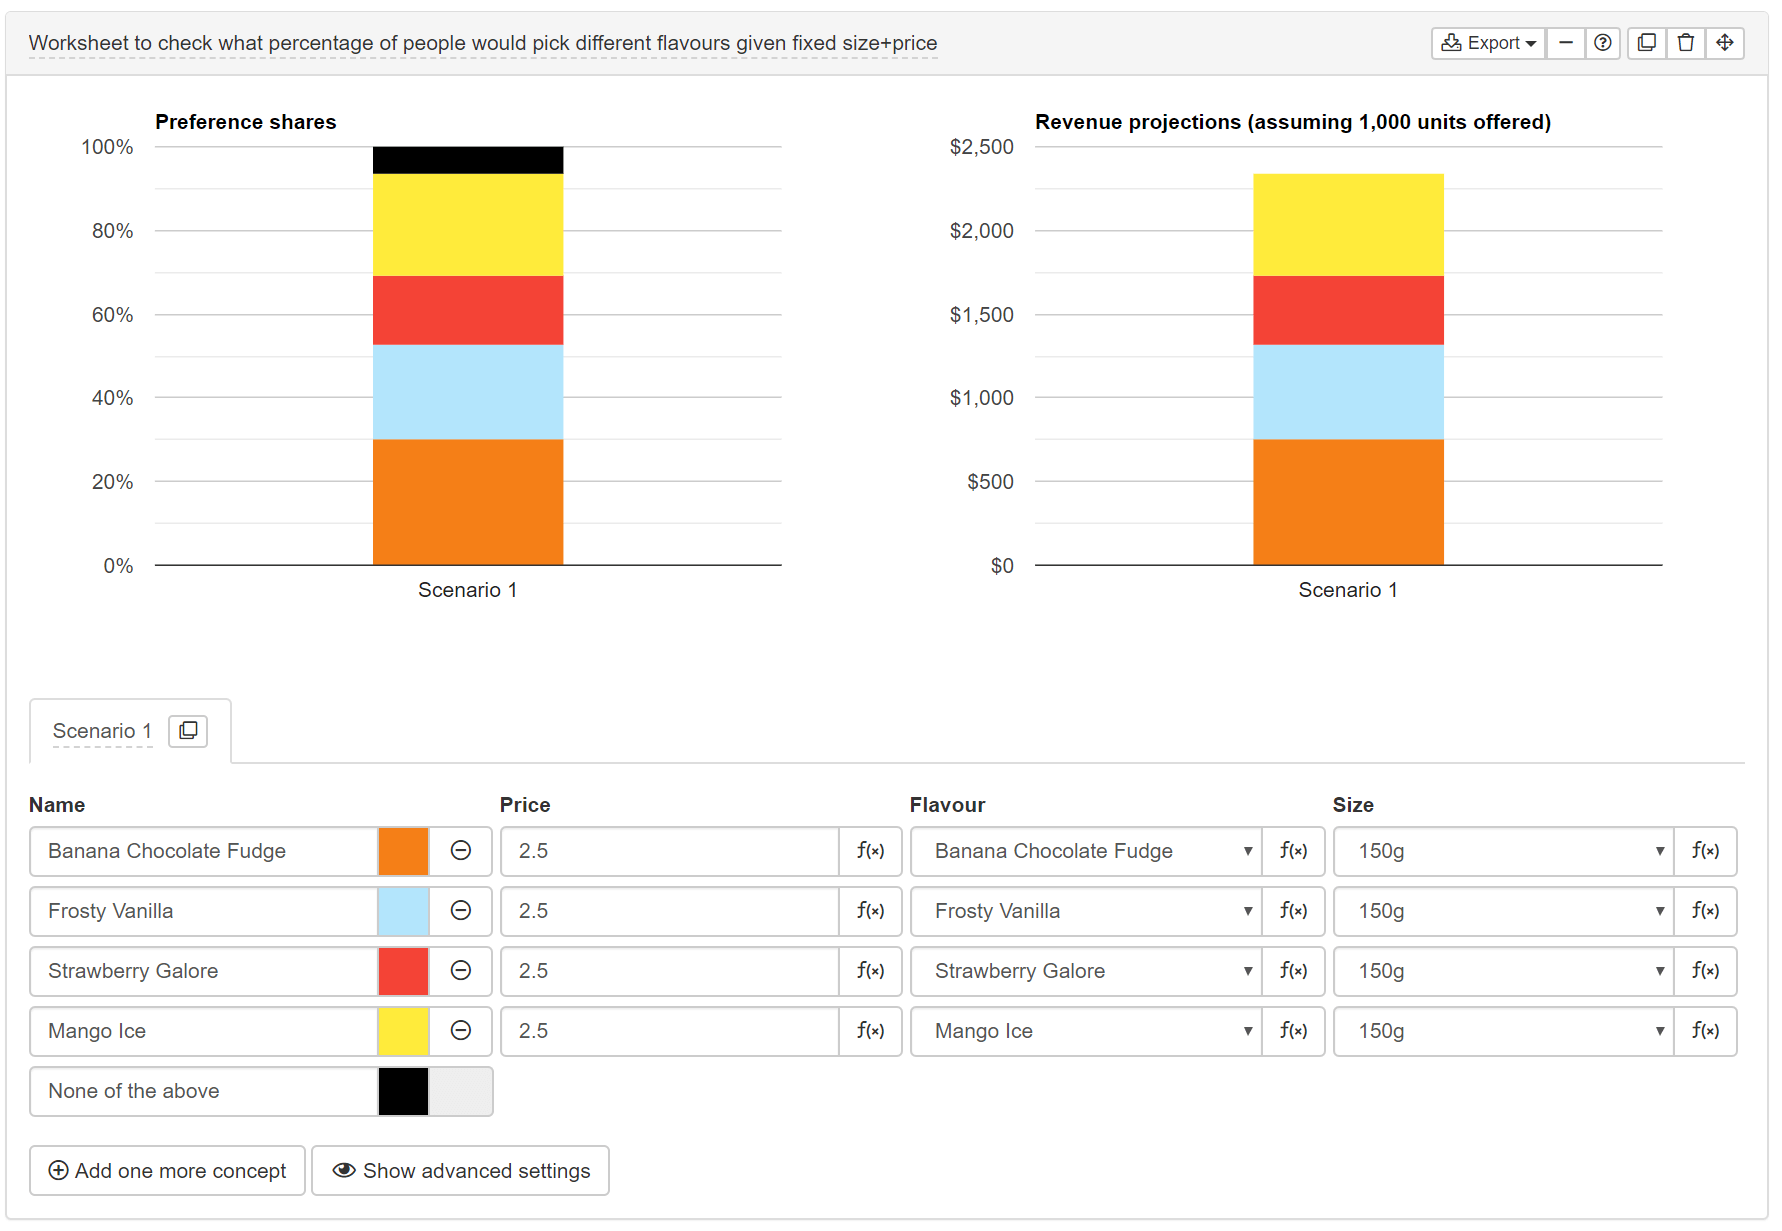 Conjoint preference share simulation with different flavours